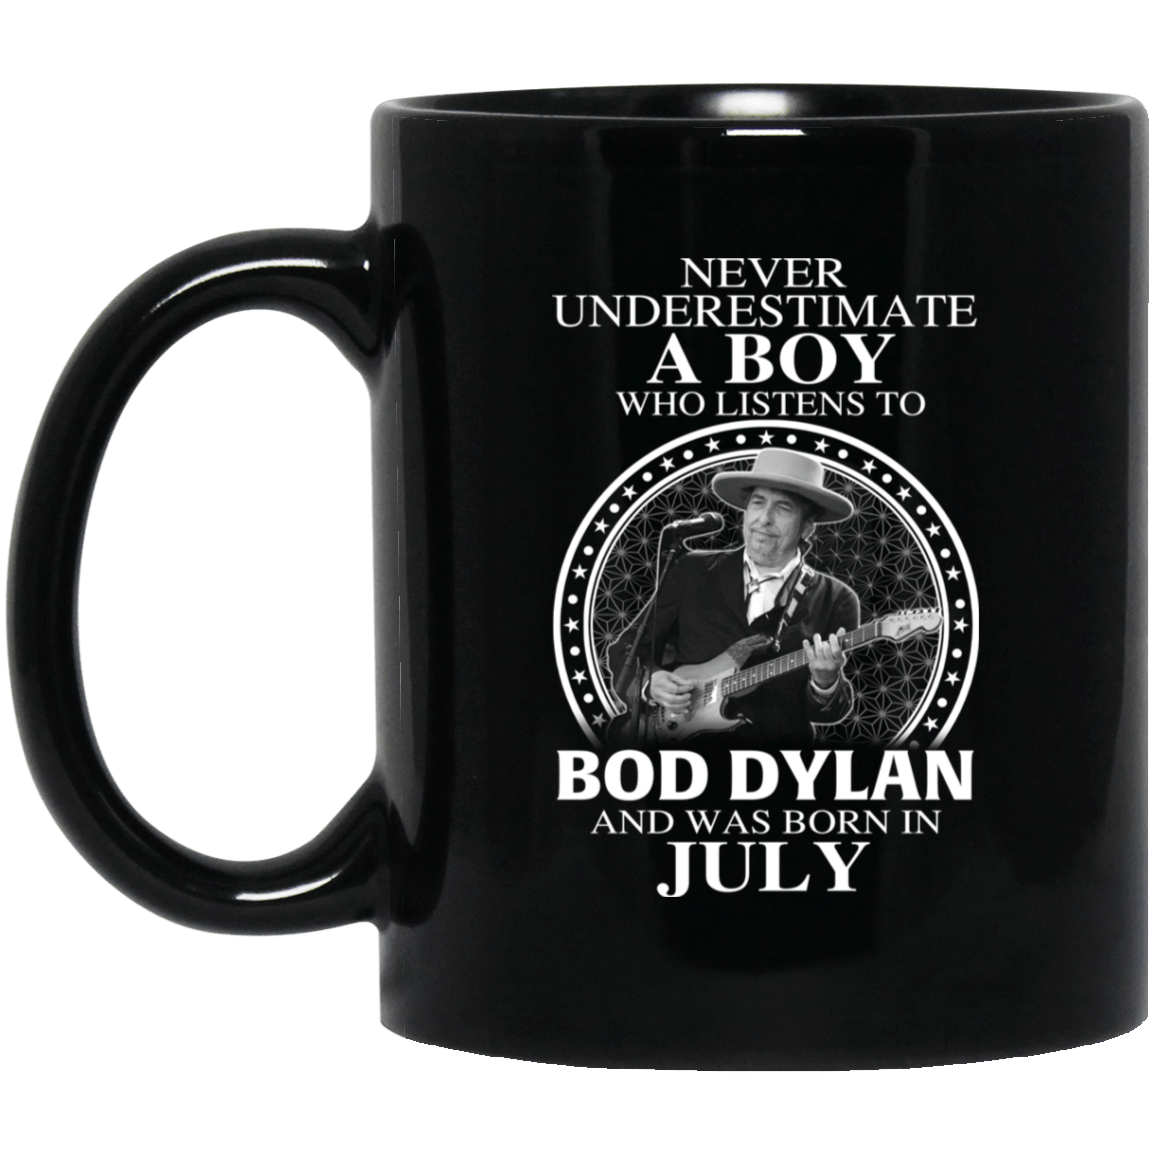 A Boy Who Listens To Bob Dylan And Was Born In July Mug 1065-10181-76153792-49307 - Tee Ript